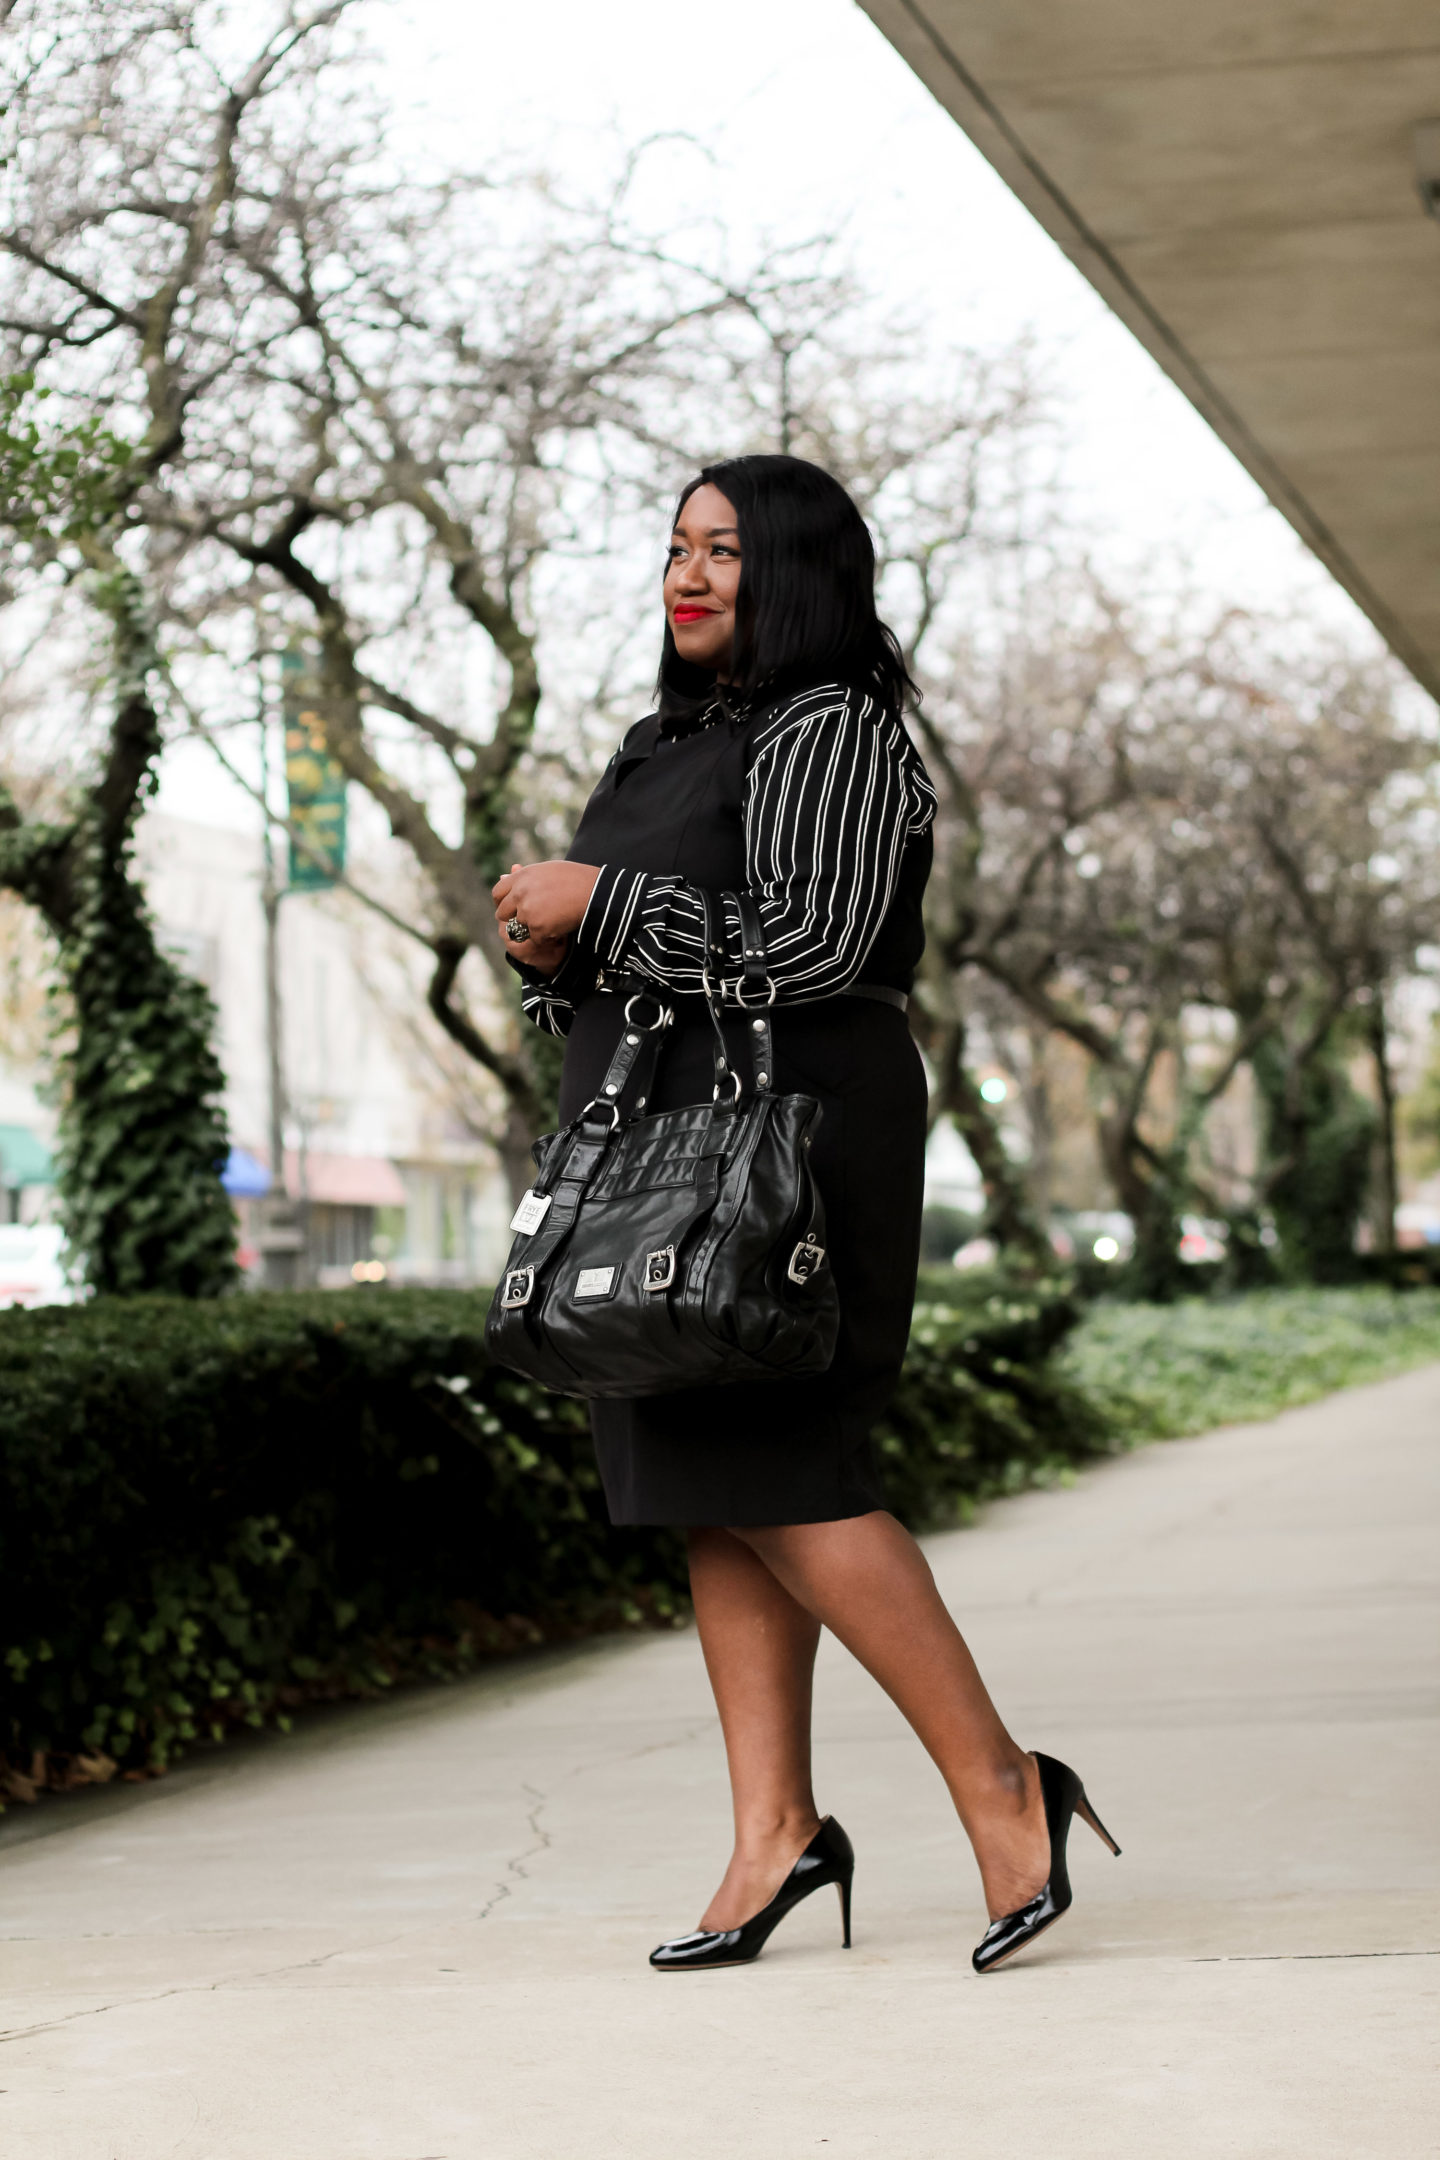 Plus Size Fashion for Women • Plus Size Red Coat + Work Outfit Idea • Plus-Size Workwear for Fall/Winter | Shapely Chic Sheri